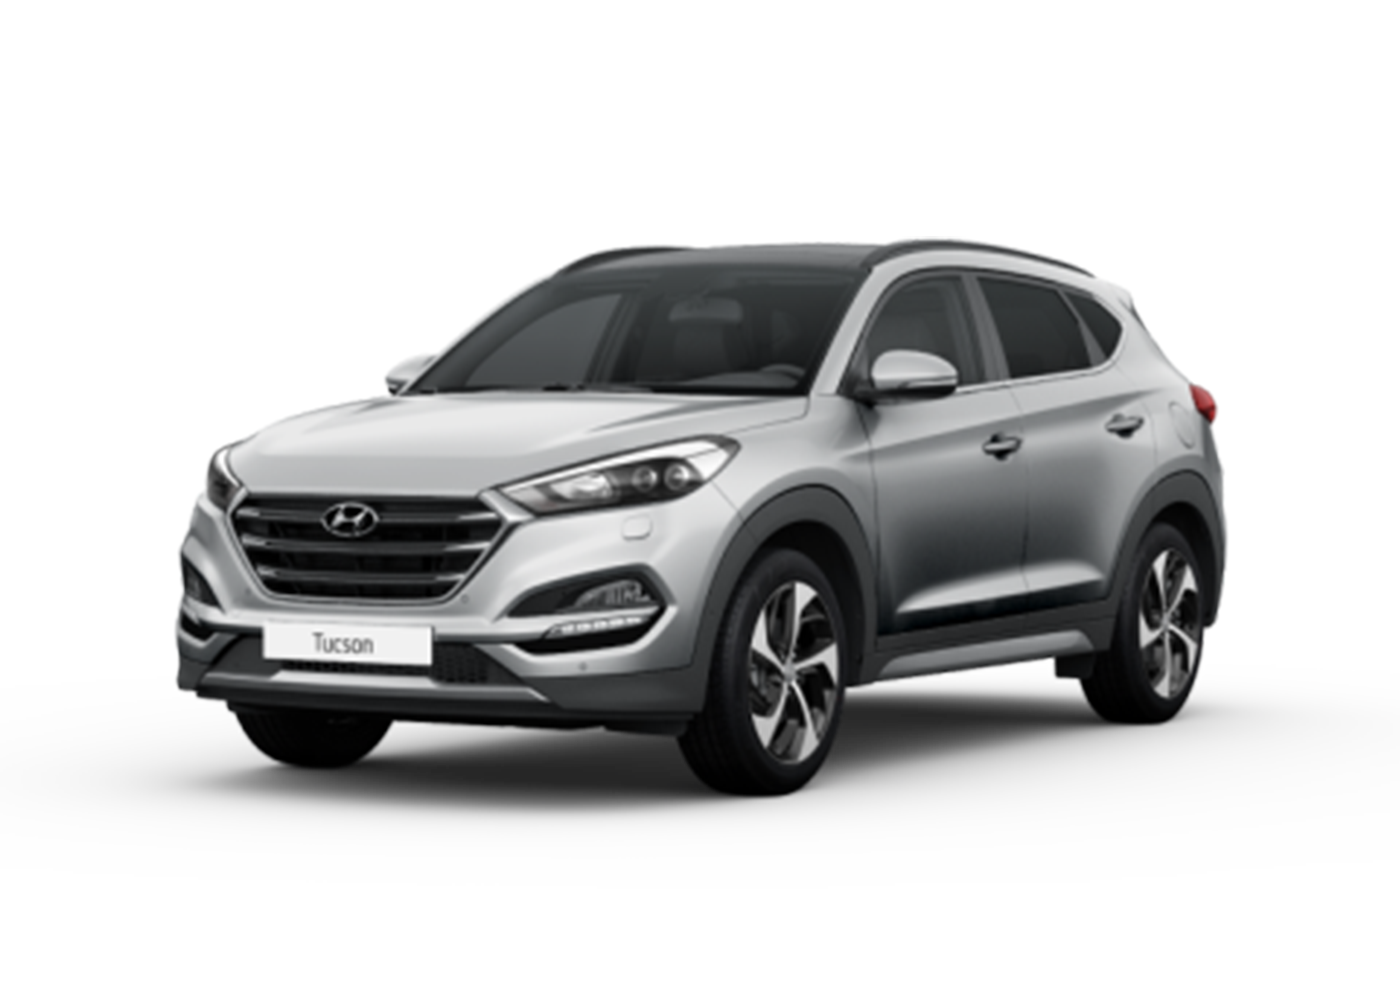 hyundai tucson 1 7 crdi dct xplus platinum silver km0 a. Black Bedroom Furniture Sets. Home Design Ideas